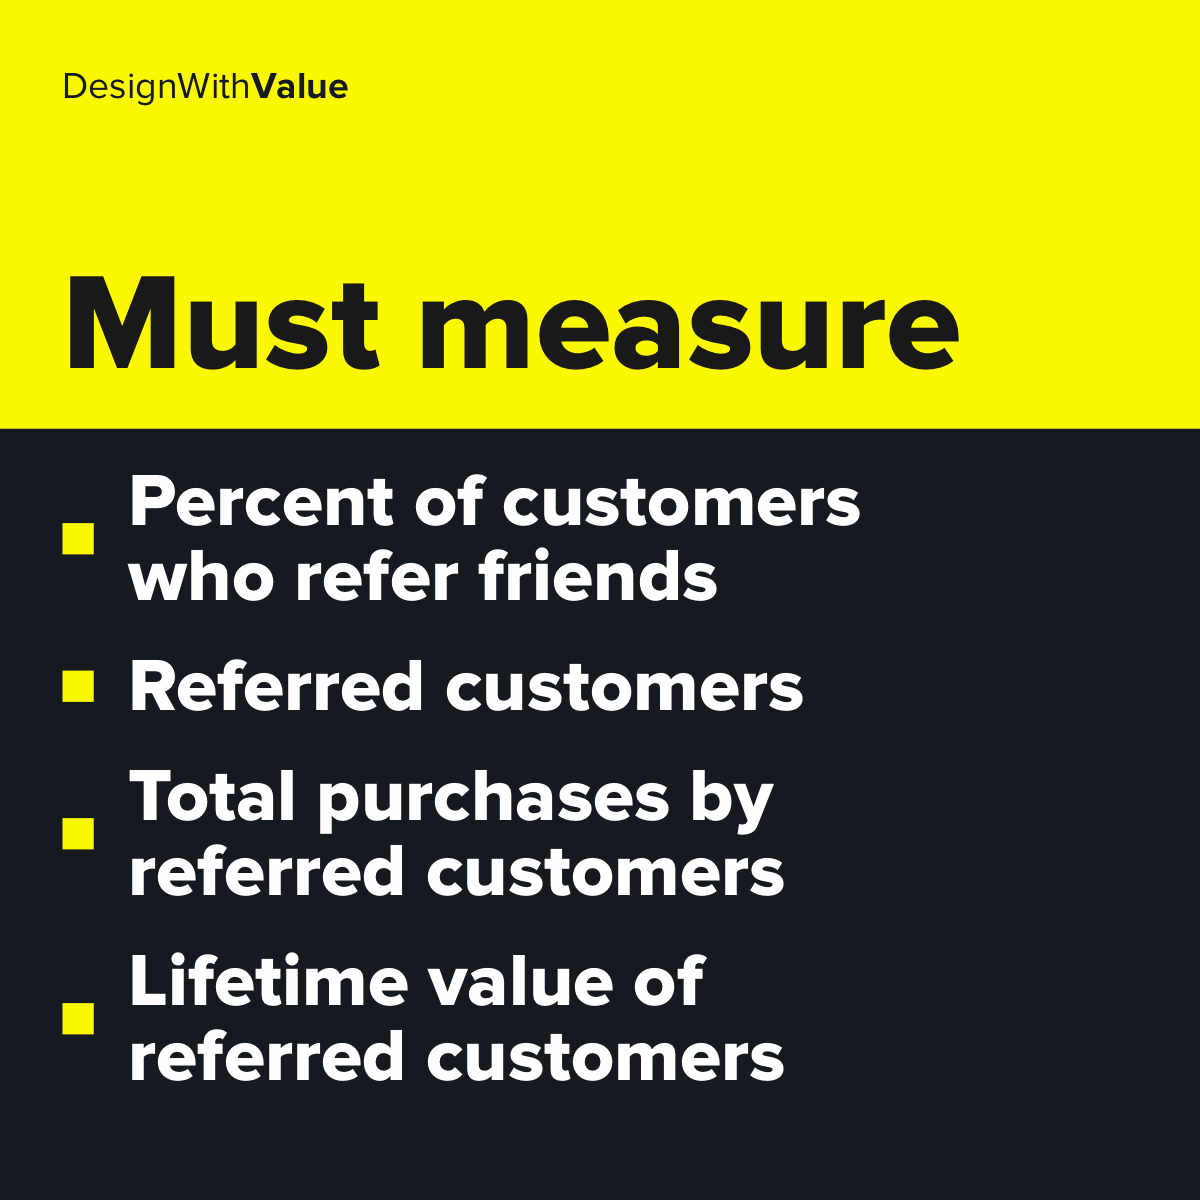 List of metrics: Percent of customers who refer friends, referred customers, total purchases by referred customers, lifetime value of referred customers.